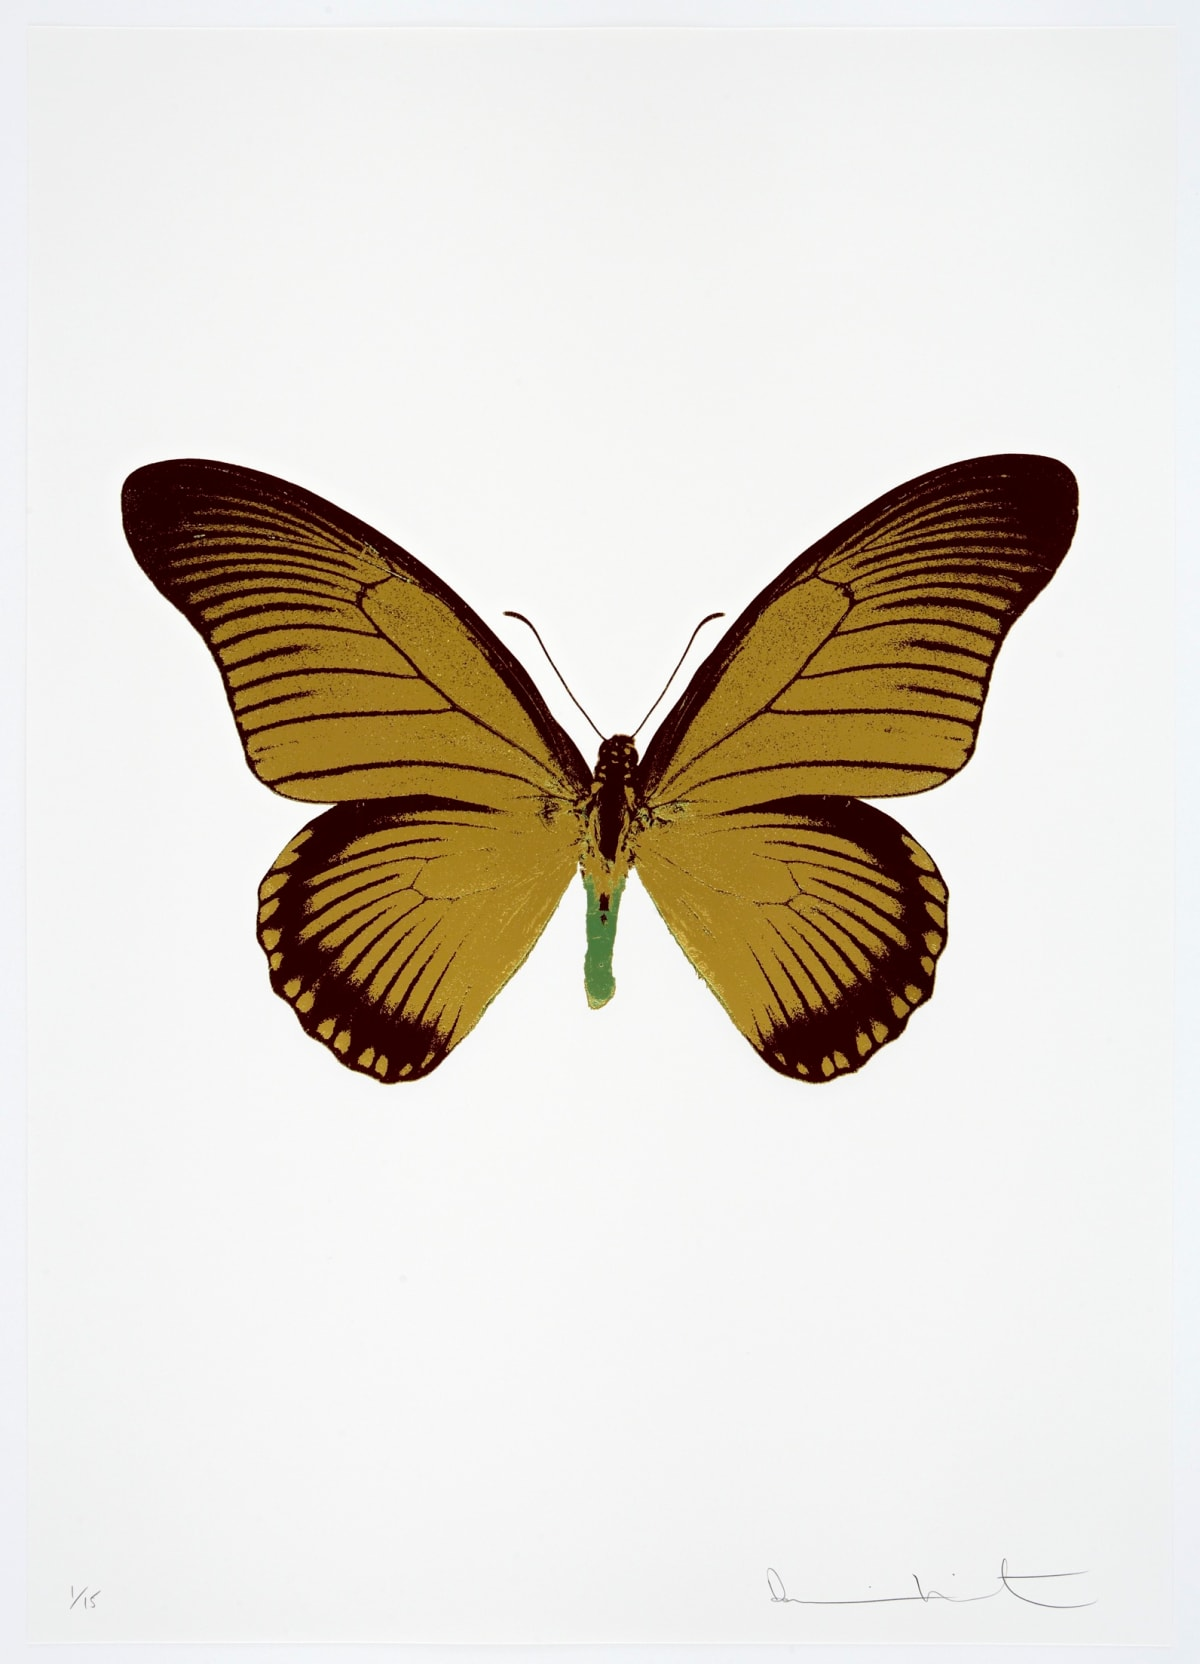 Damien Hirst The Souls IV - Oriental Gold/Burgundy/Leaf Green Damien Hirst butterfly foil print for sale Damien Hirst print for sale , 2010 3 colour foil block on 300gsm Arches 88 archival paper. Signed and numbered. Published by Paul Stolper and Other Criteria 72 x 51cm OC8008 / 1418-31 Edition of 15